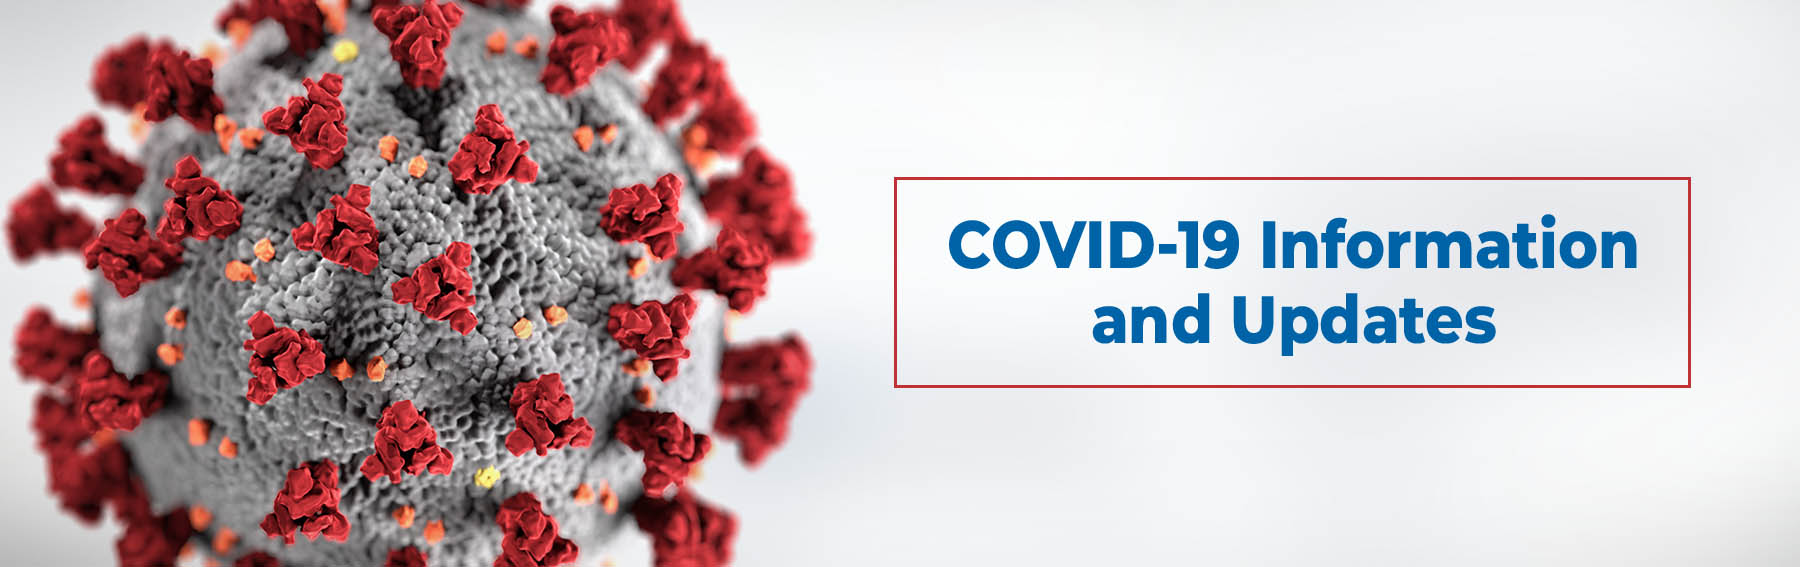 COVID-19 Guidelines header